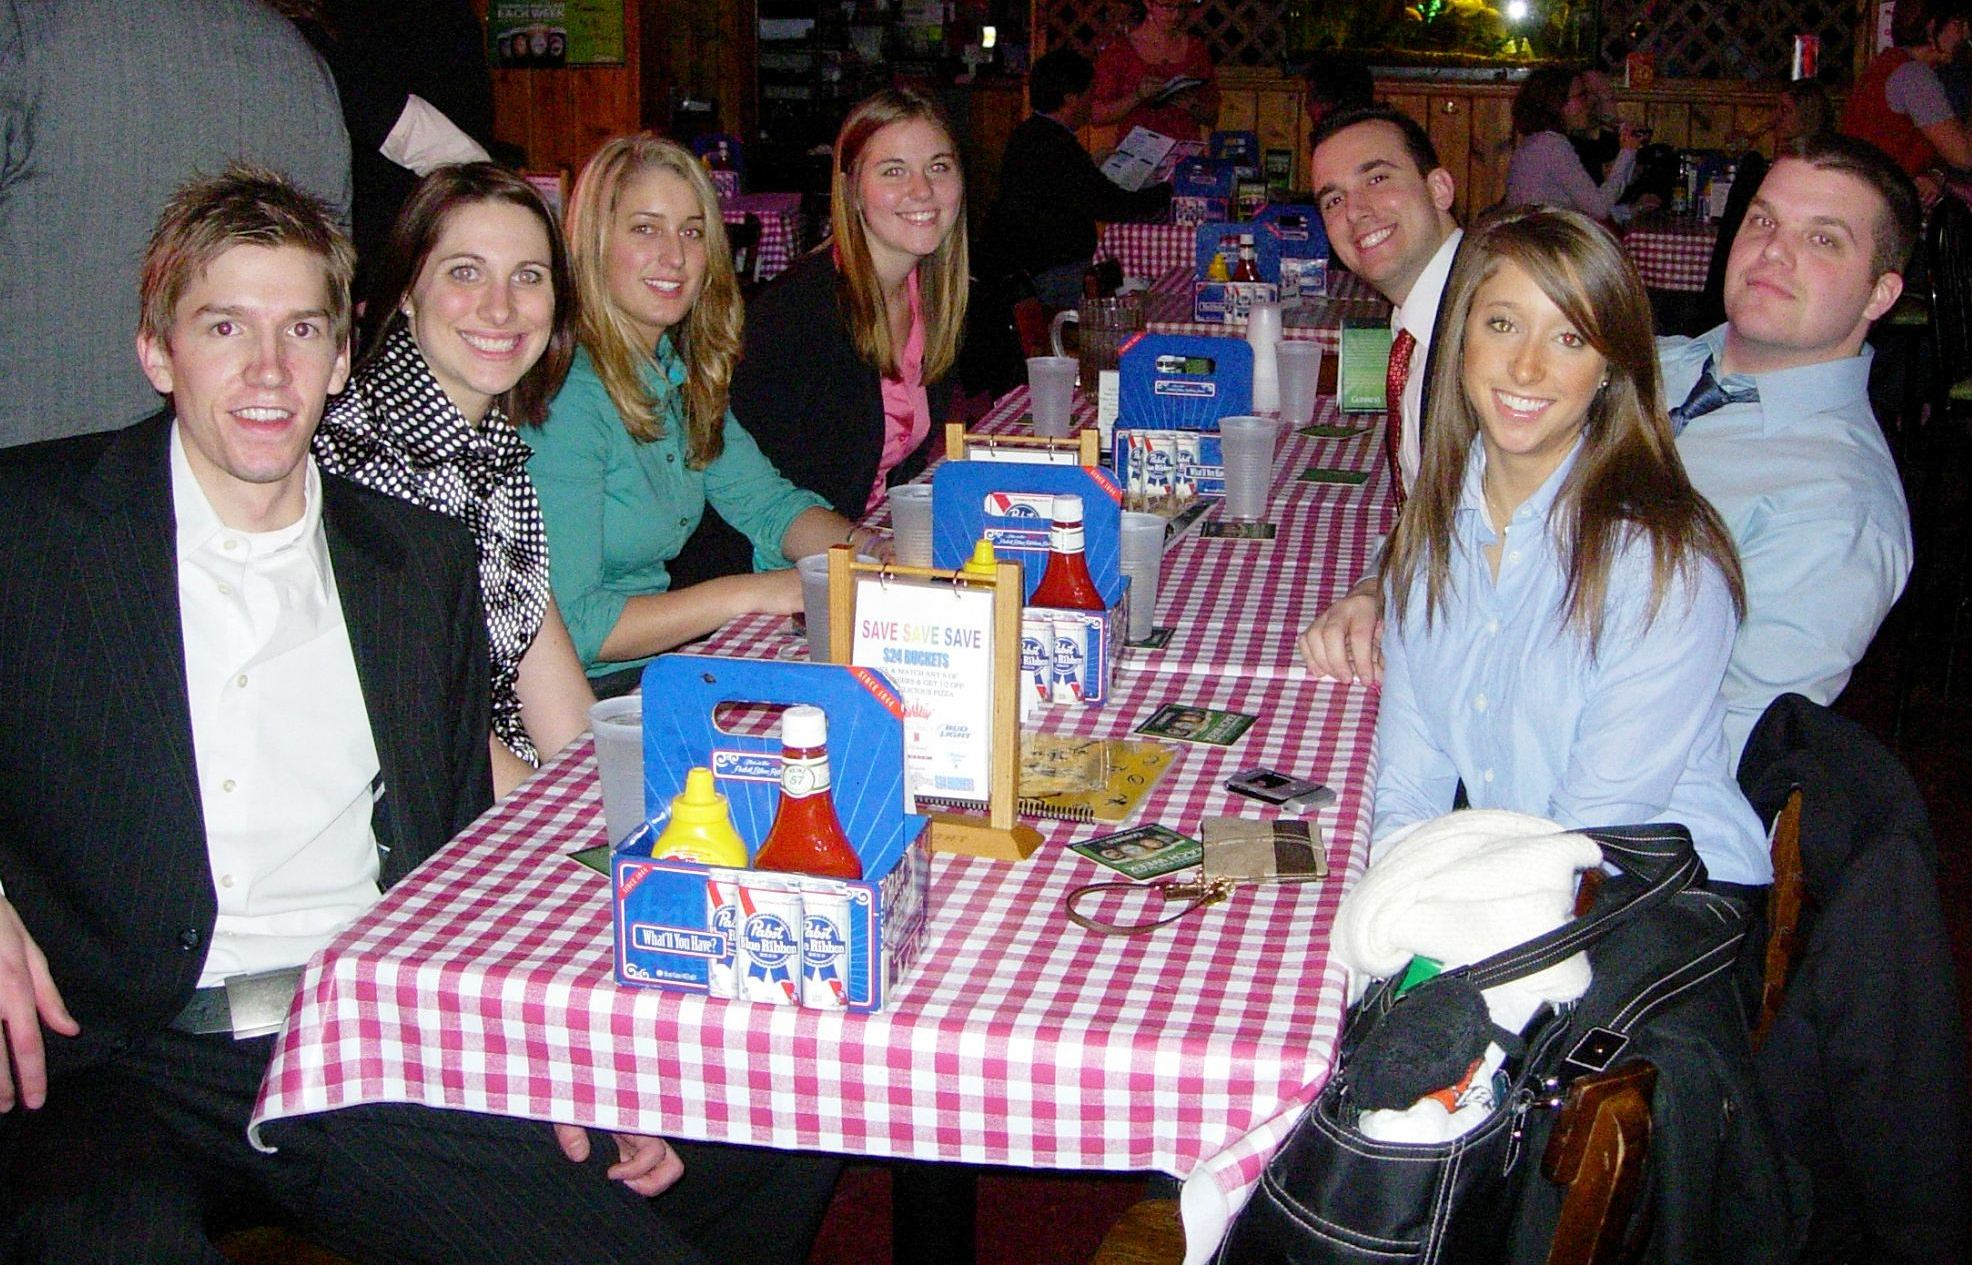 Students at Chicago Alumni Dinner